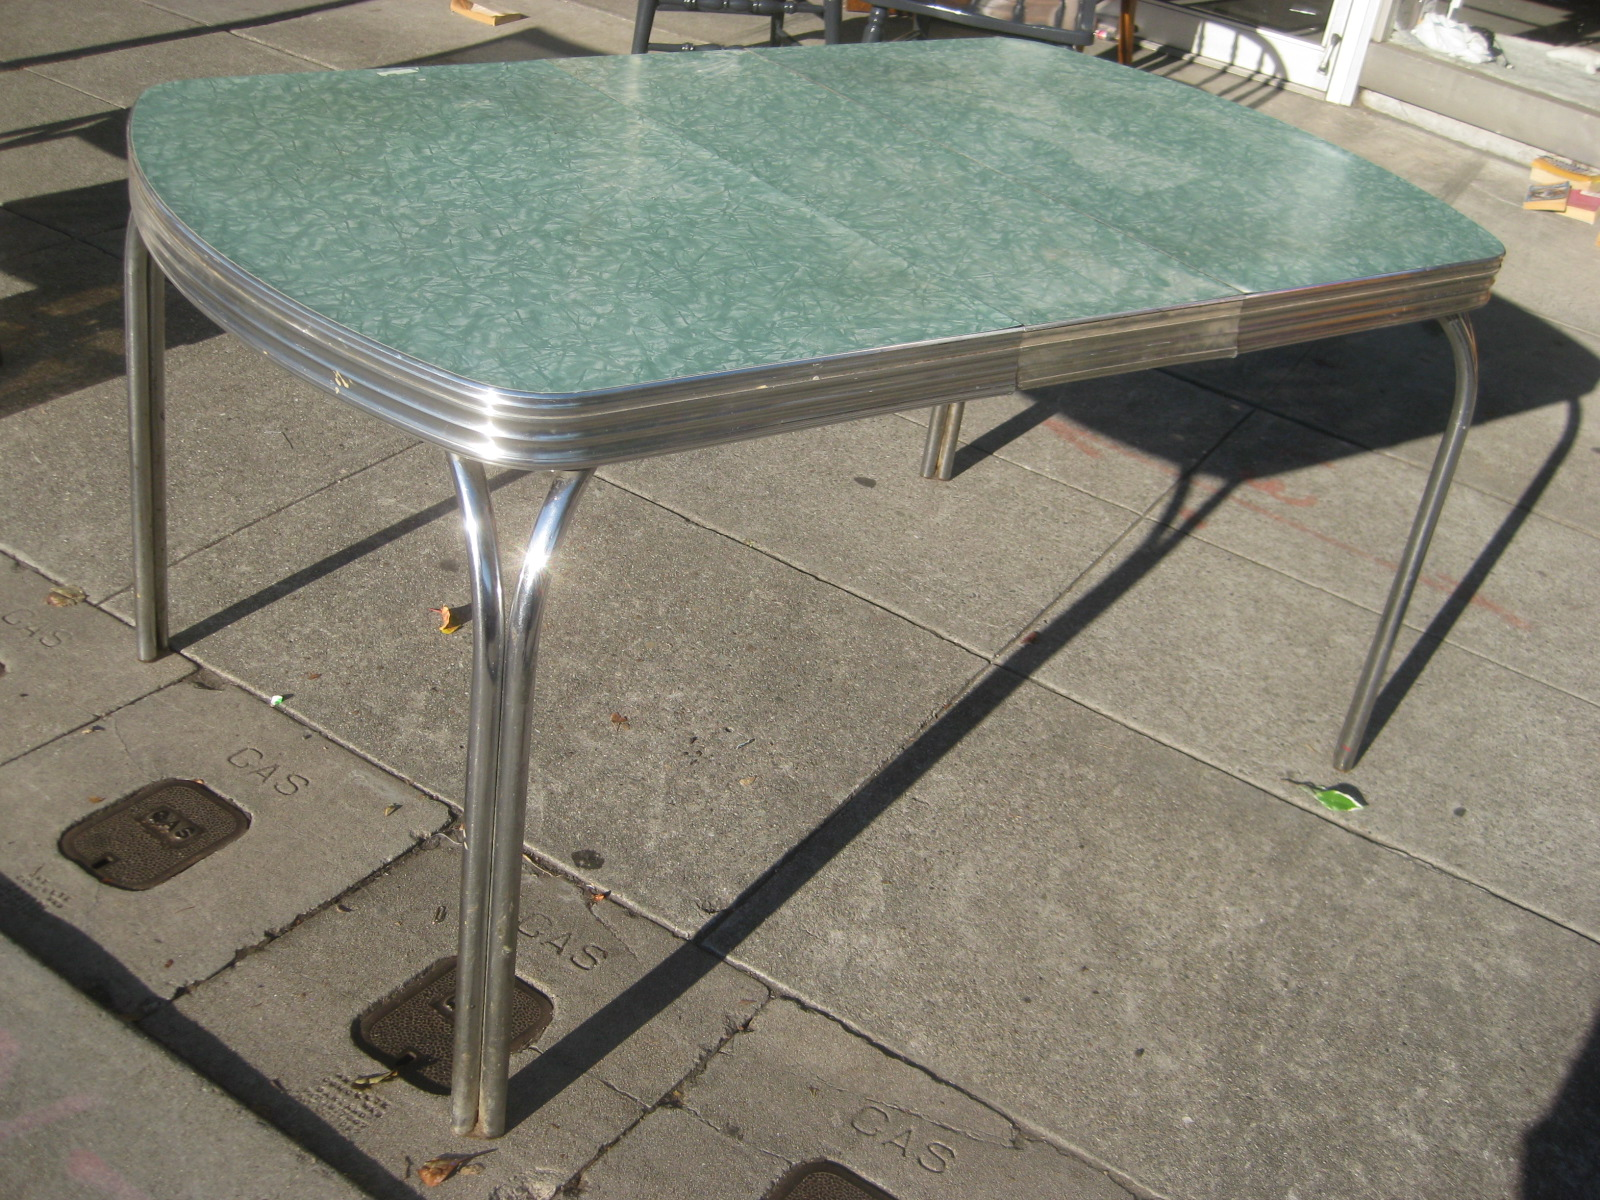 sold 50s chrome formica kitchen table 65 - Formica Kitchen Table